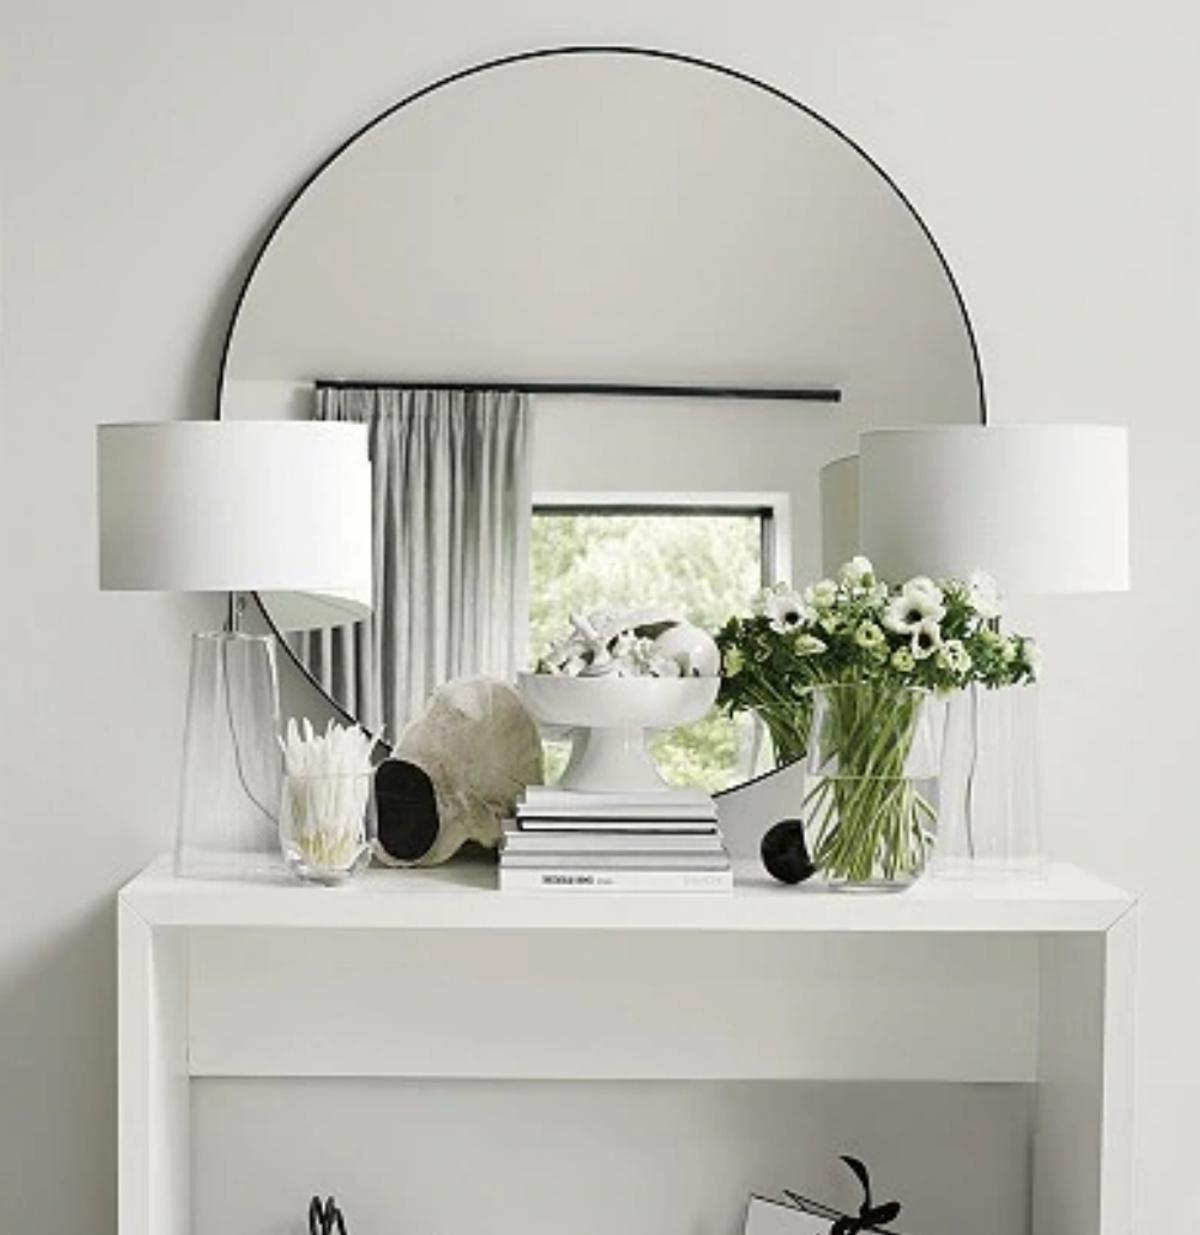 The White Company Chiltern Large Round Mirror In Babergh For 195 00 For Sale Shpock